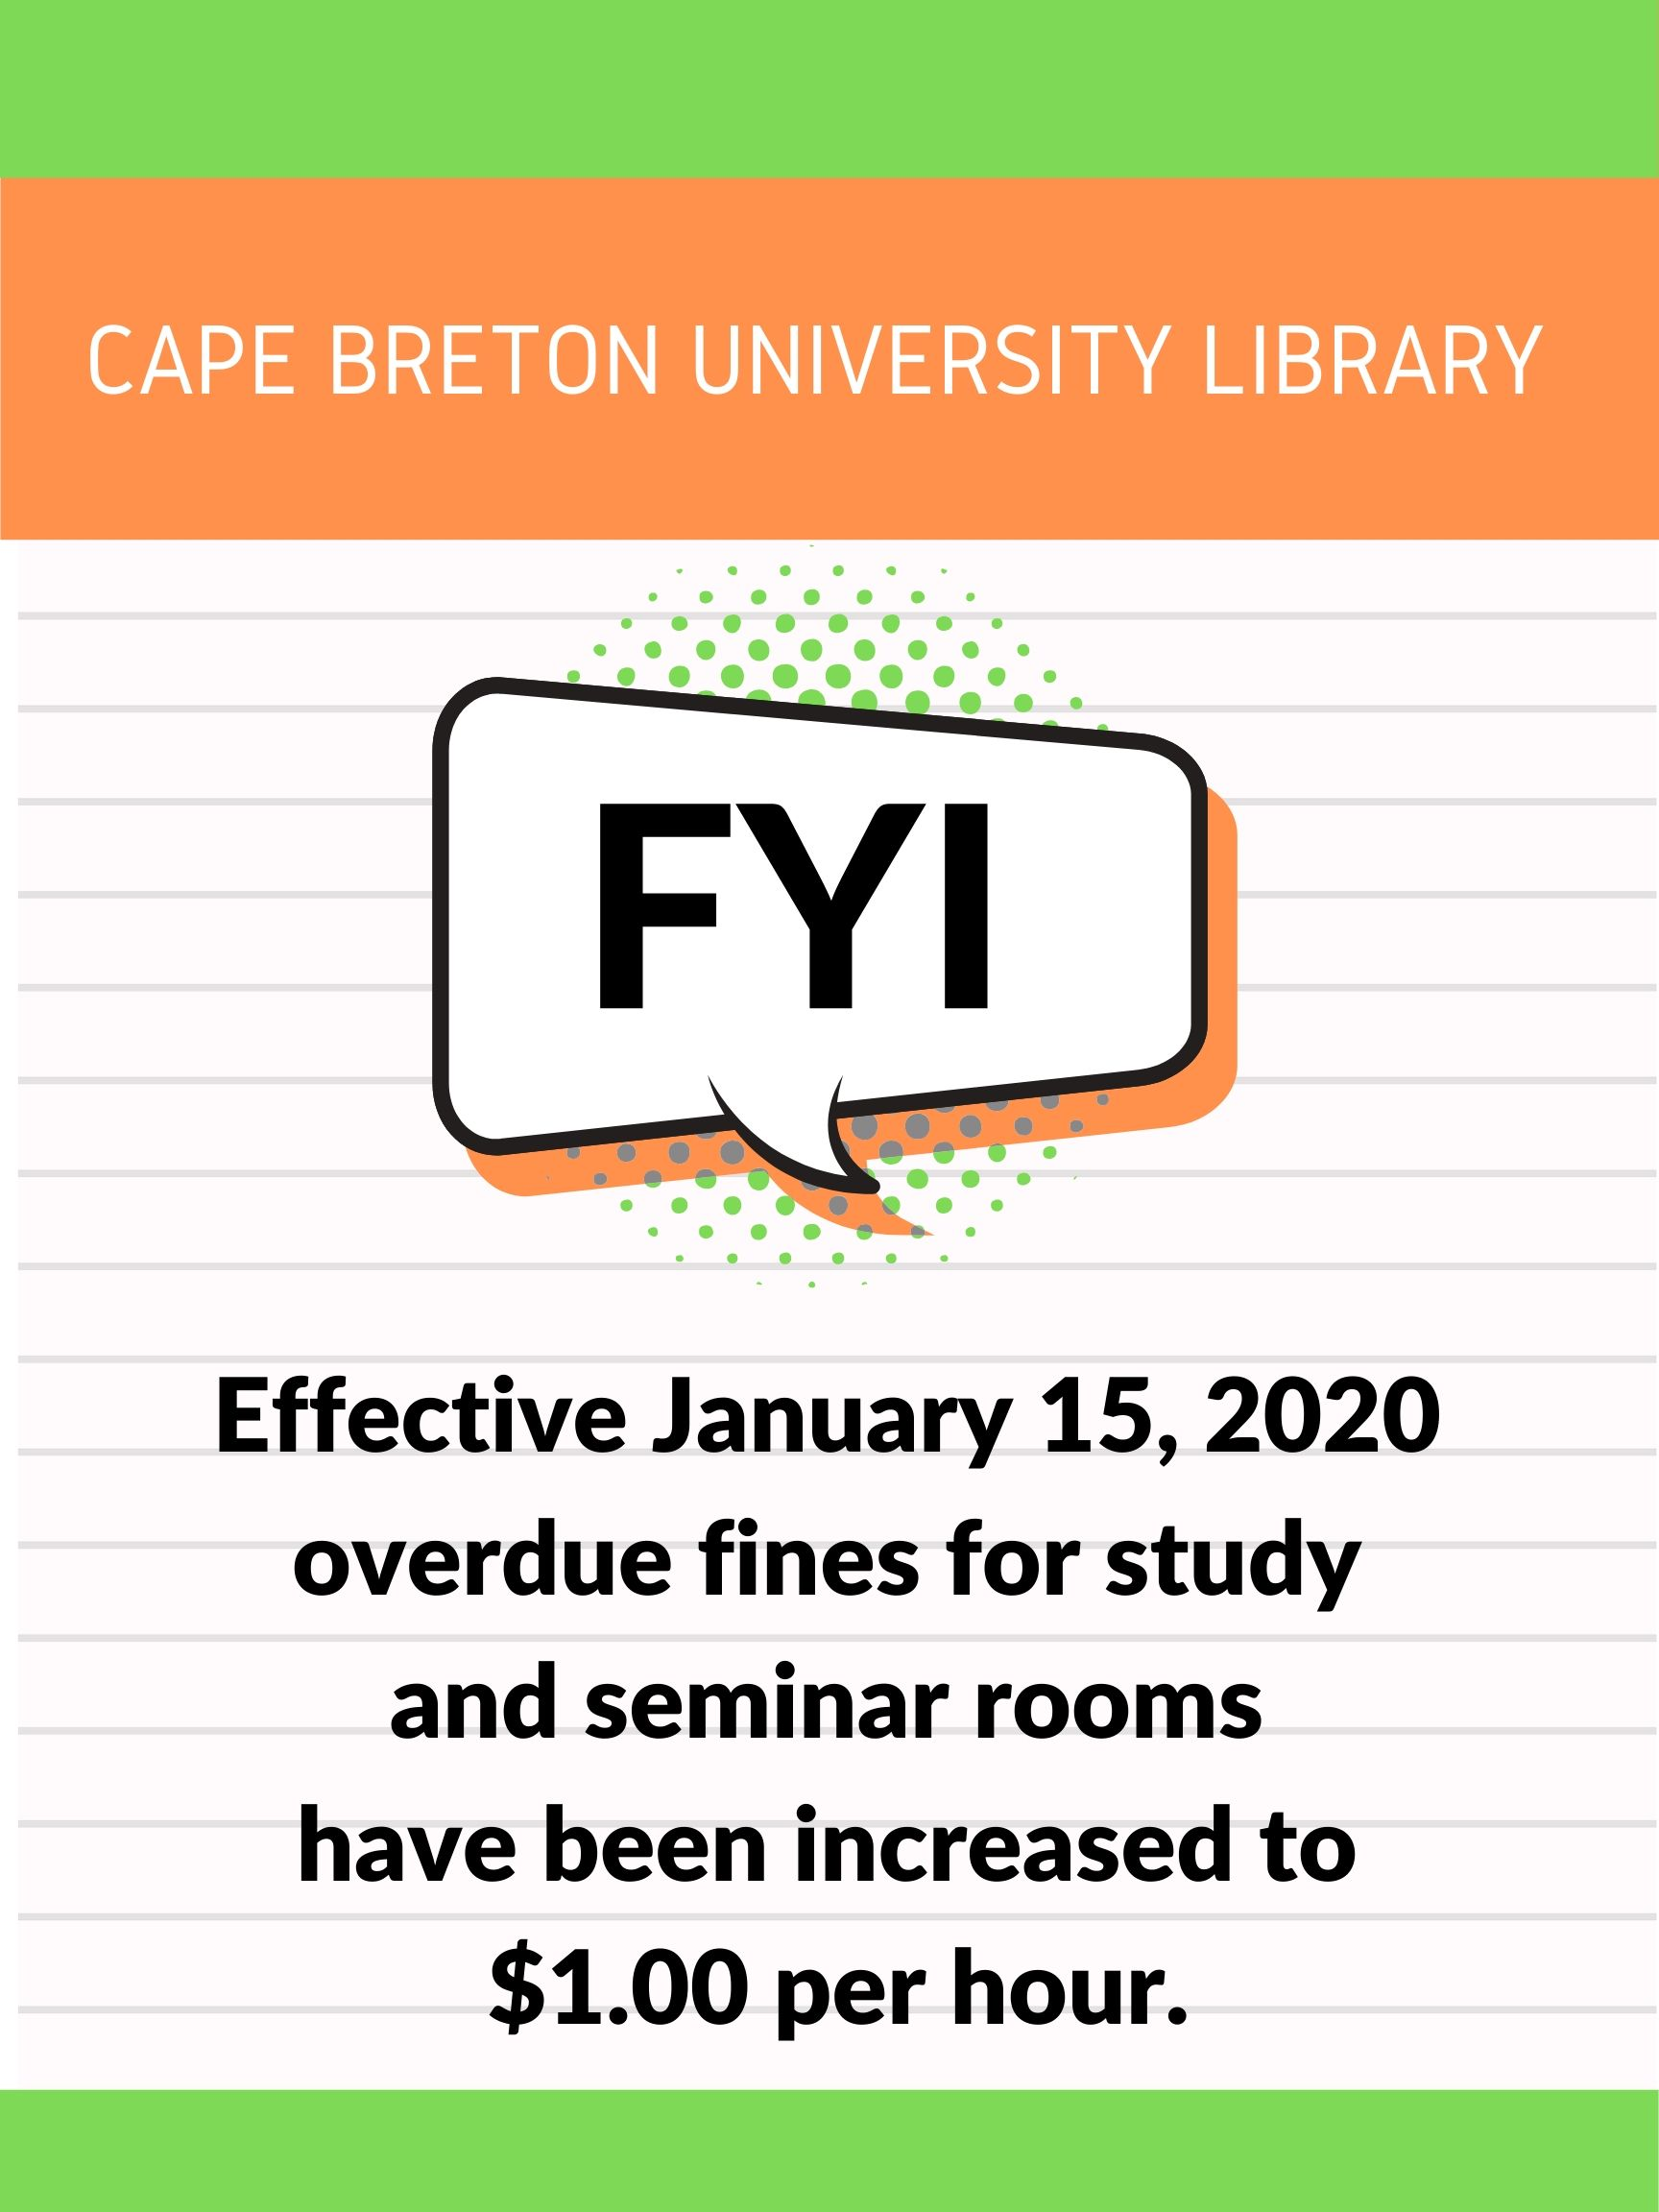 Room key late fines increase to $1.00 per hour effective January 15, 2020